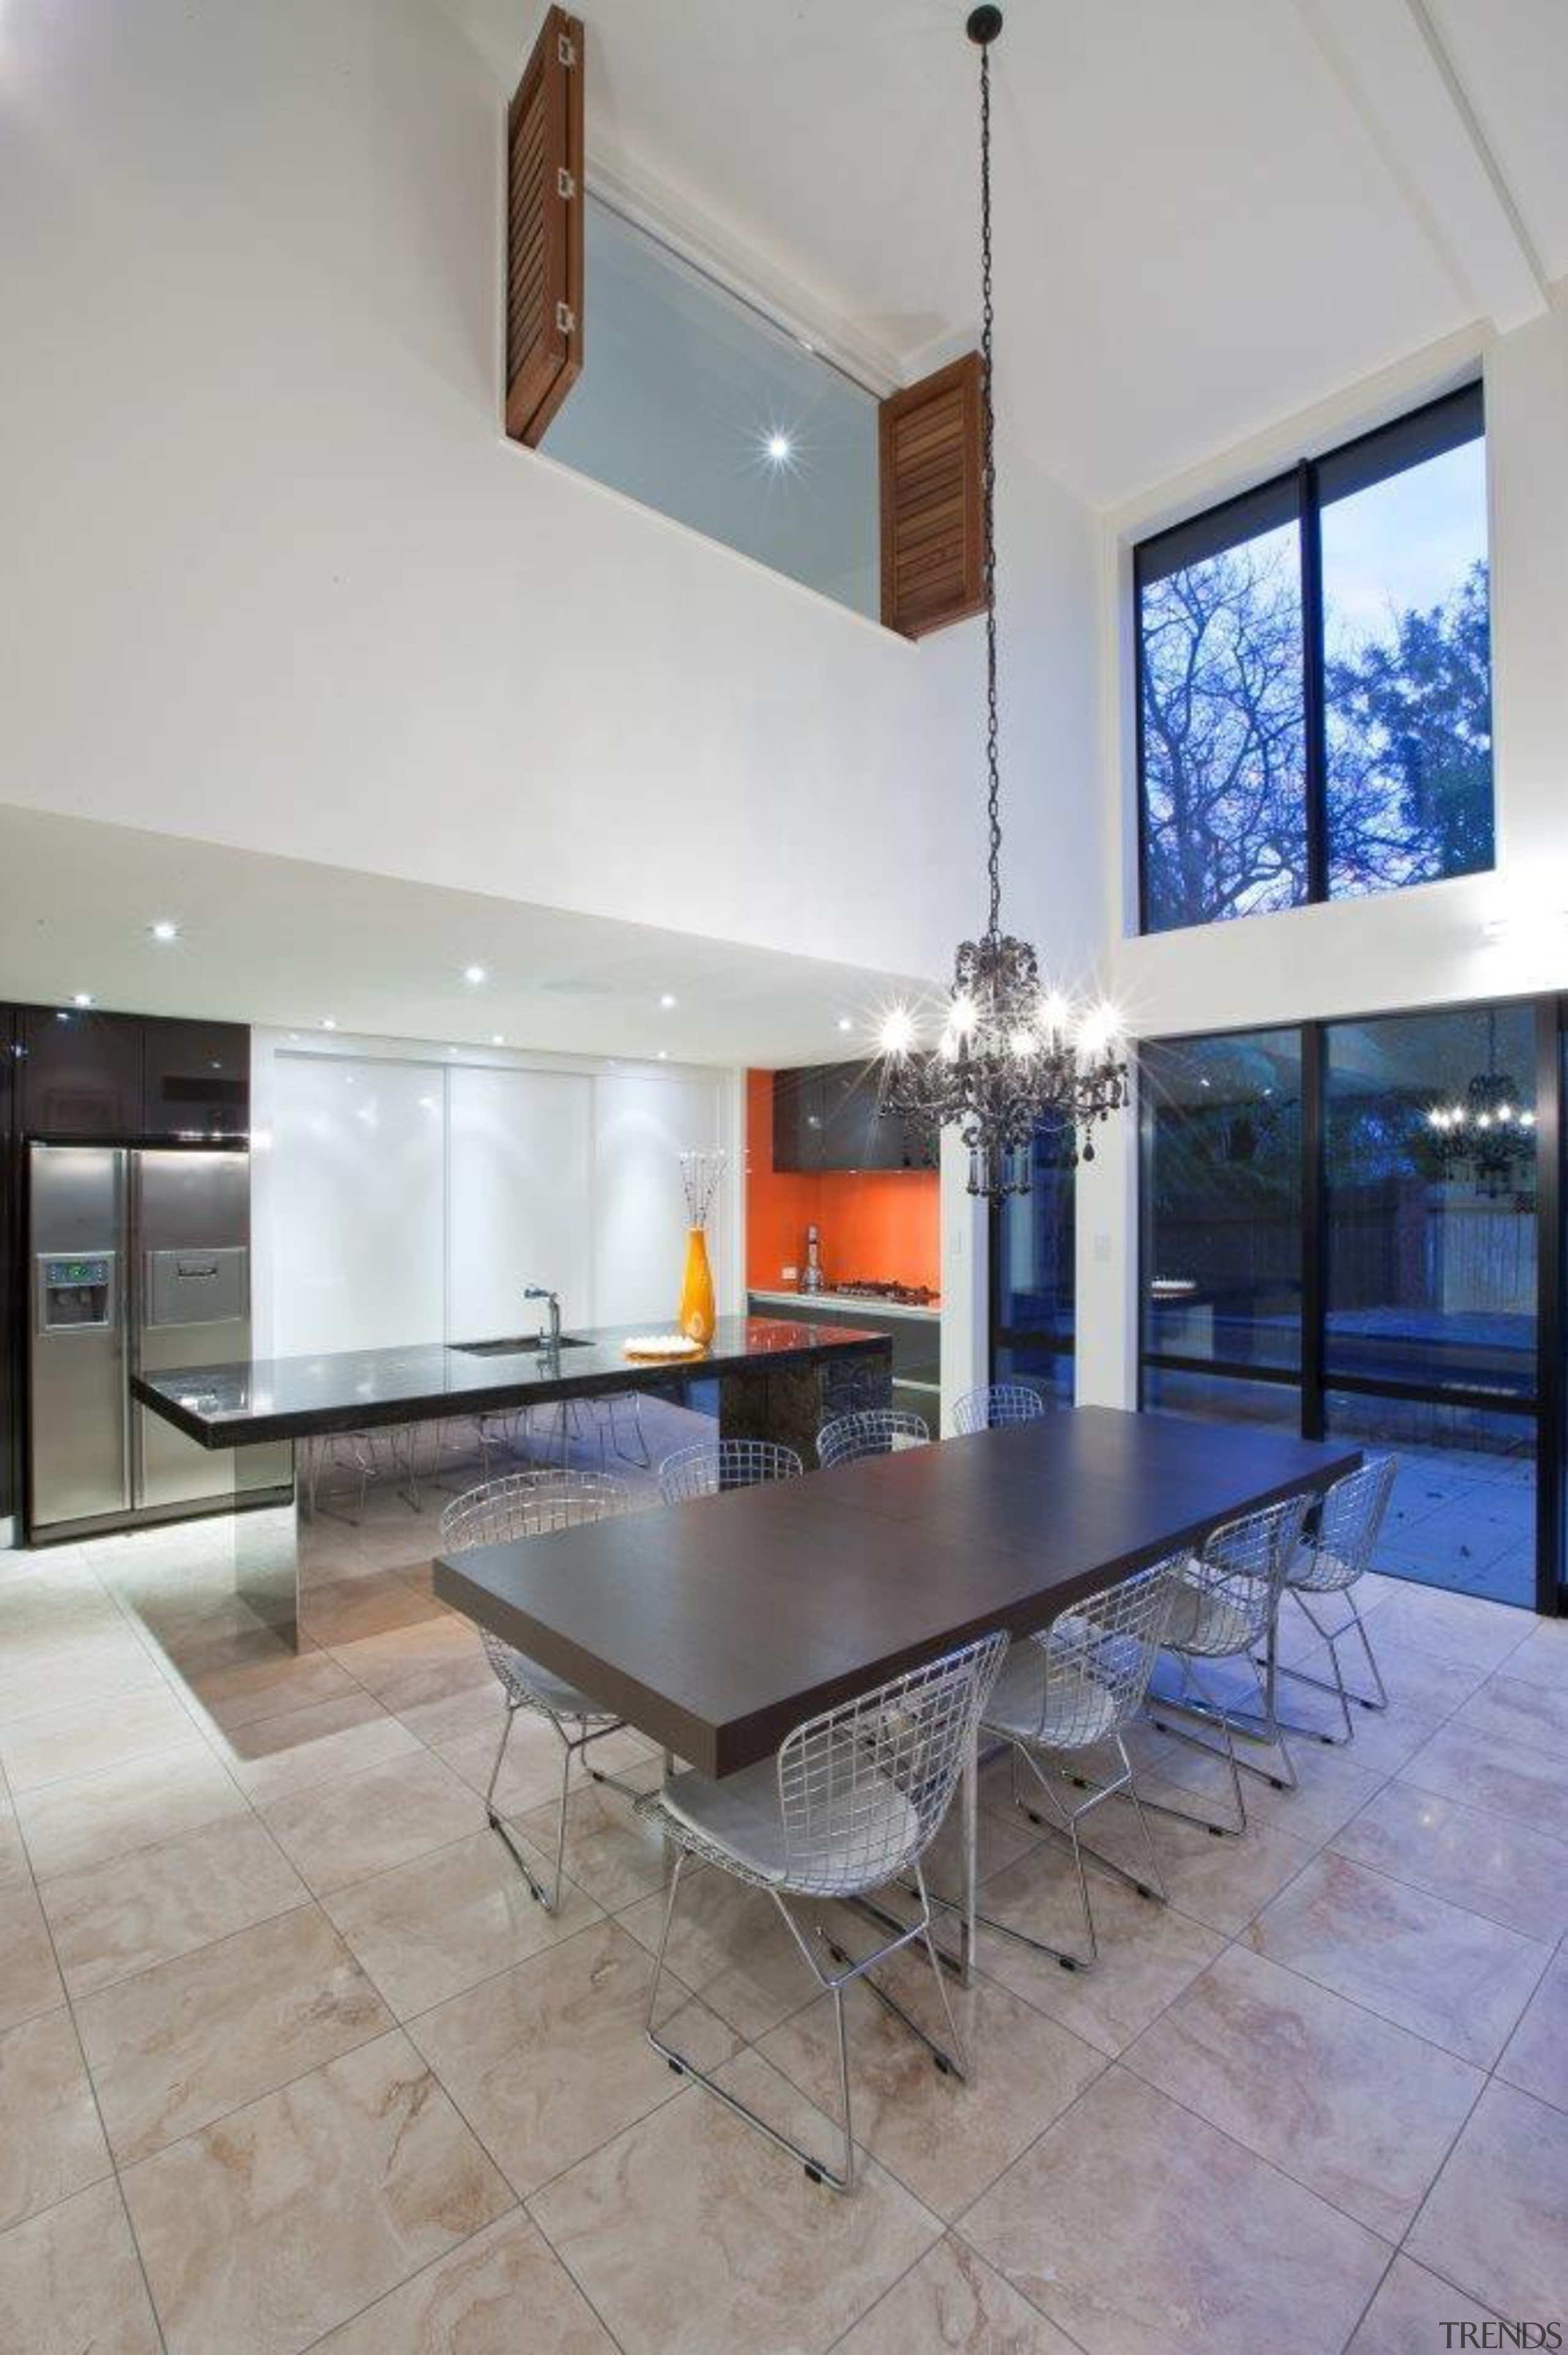 wellington kitchen 5.jpg - wellington_kitchen_5.jpg - architecture | architecture, ceiling, countertop, floor, flooring, house, interior design, living room, real estate, table, wood flooring, gray